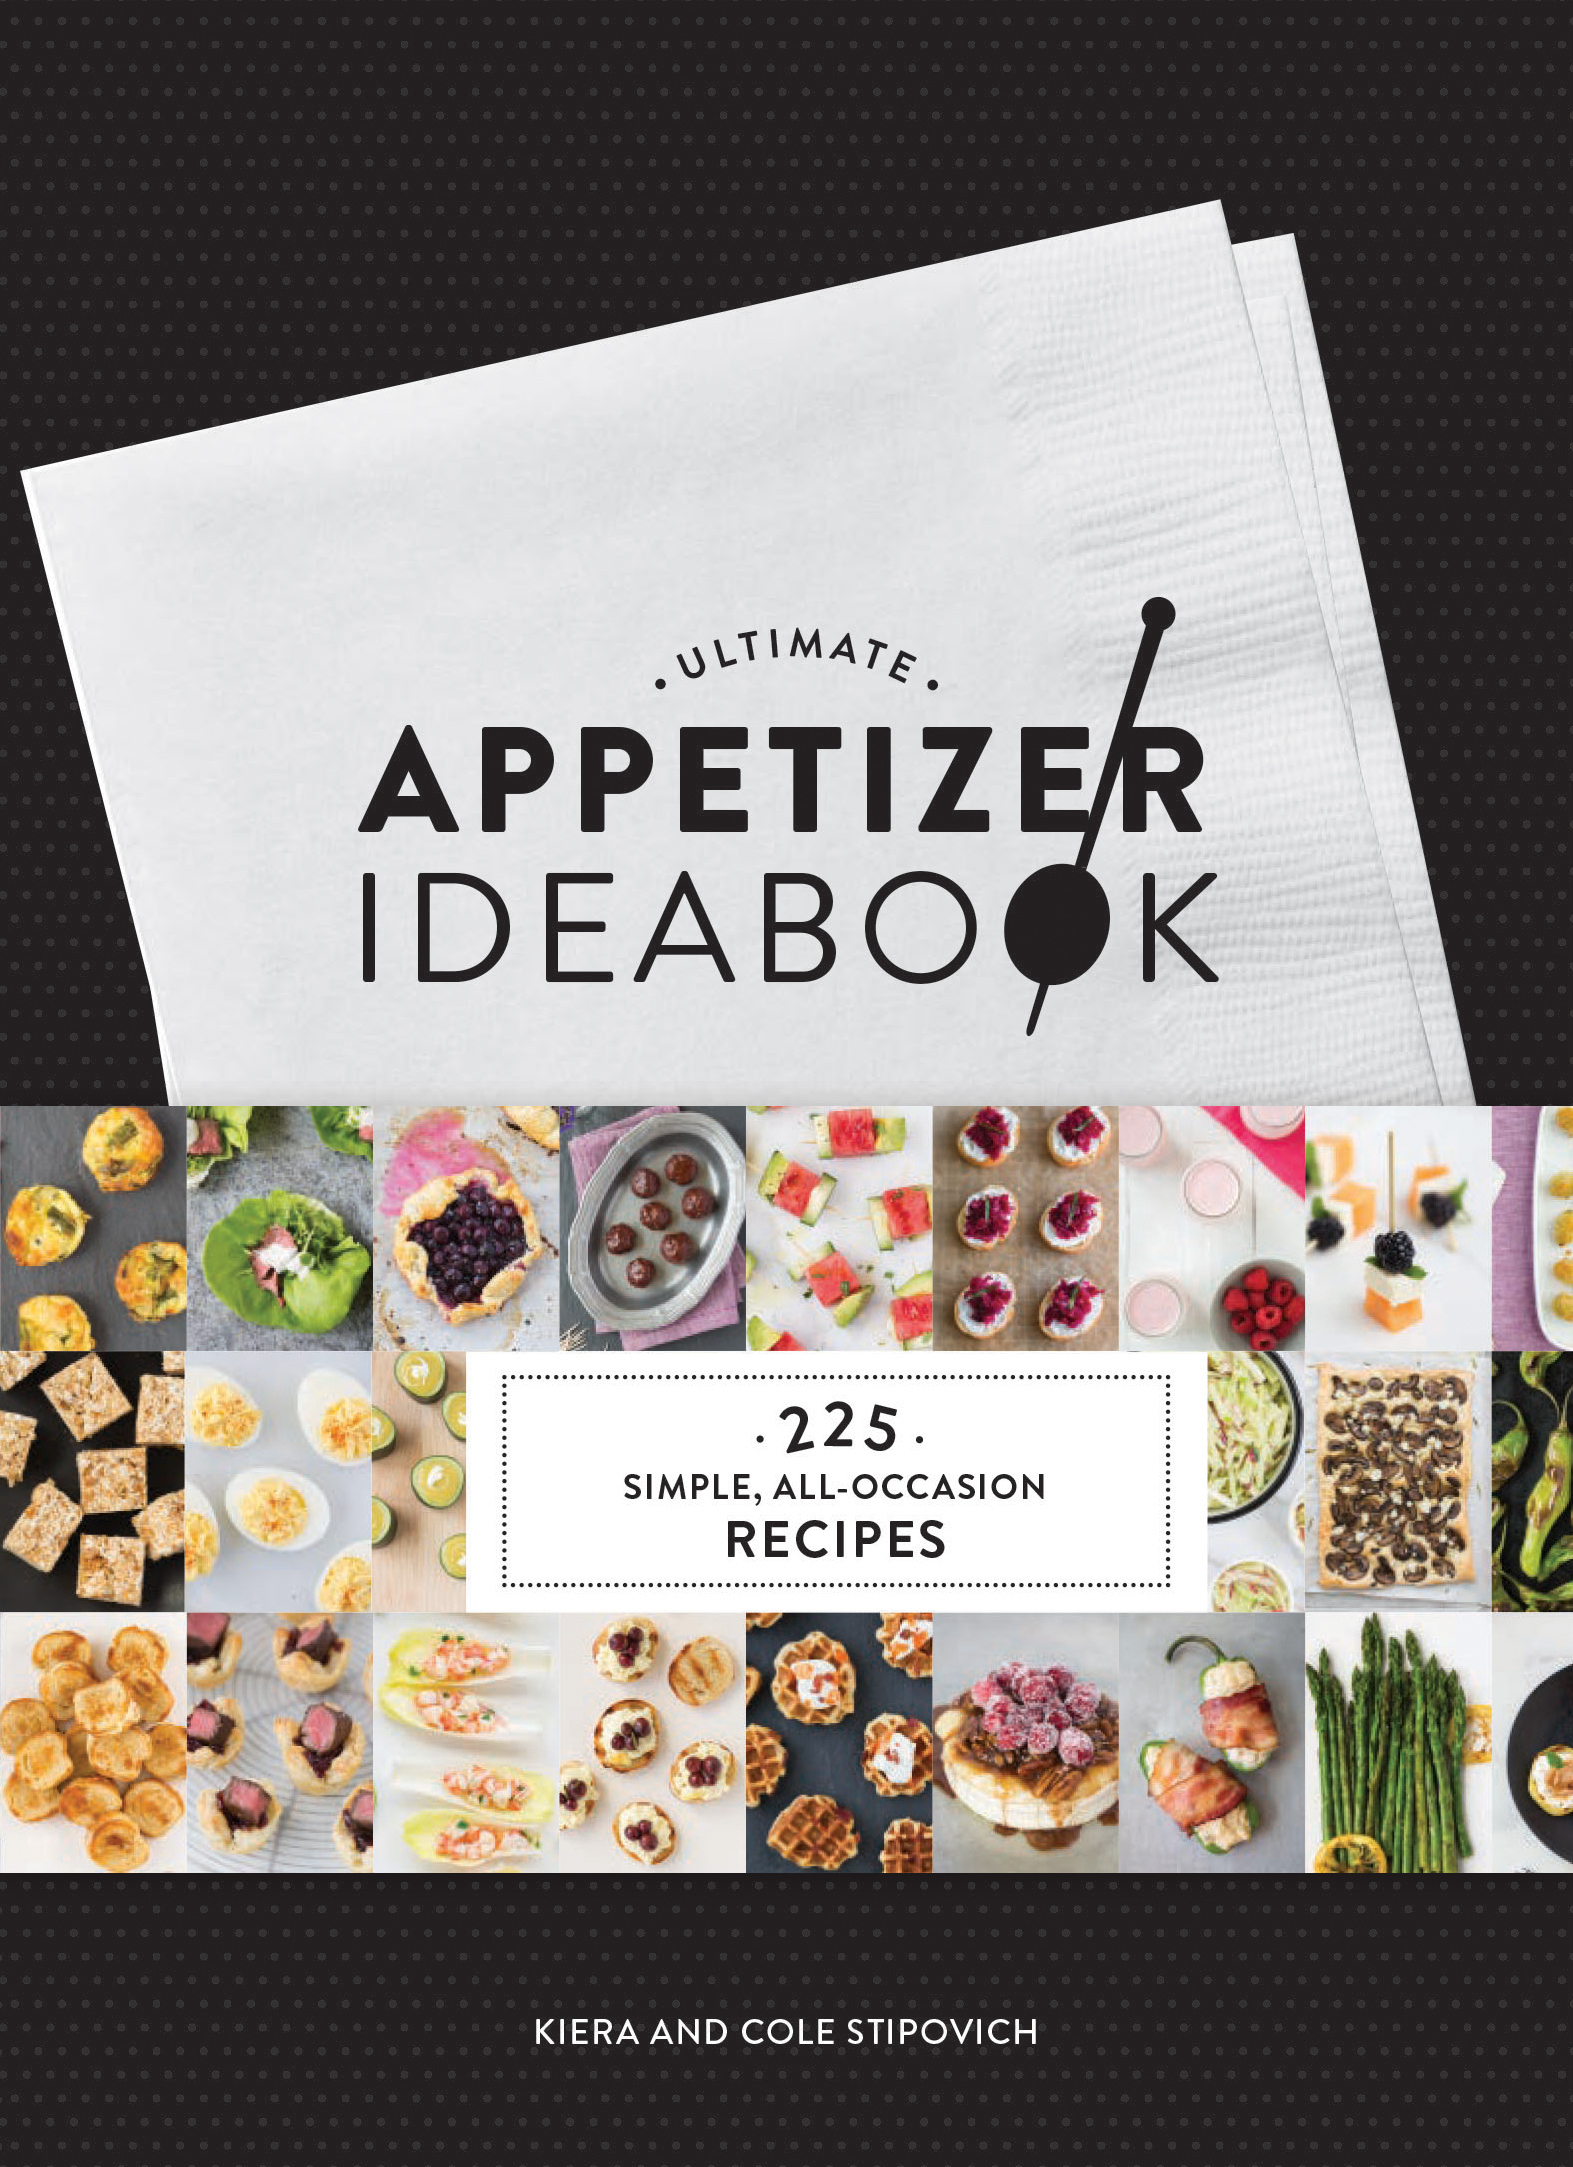 """""""Ultimate Appetizer Ideabook: 225 Simple, All-Occasion Recipes"""" (Chronicle Books, $19.99)."""